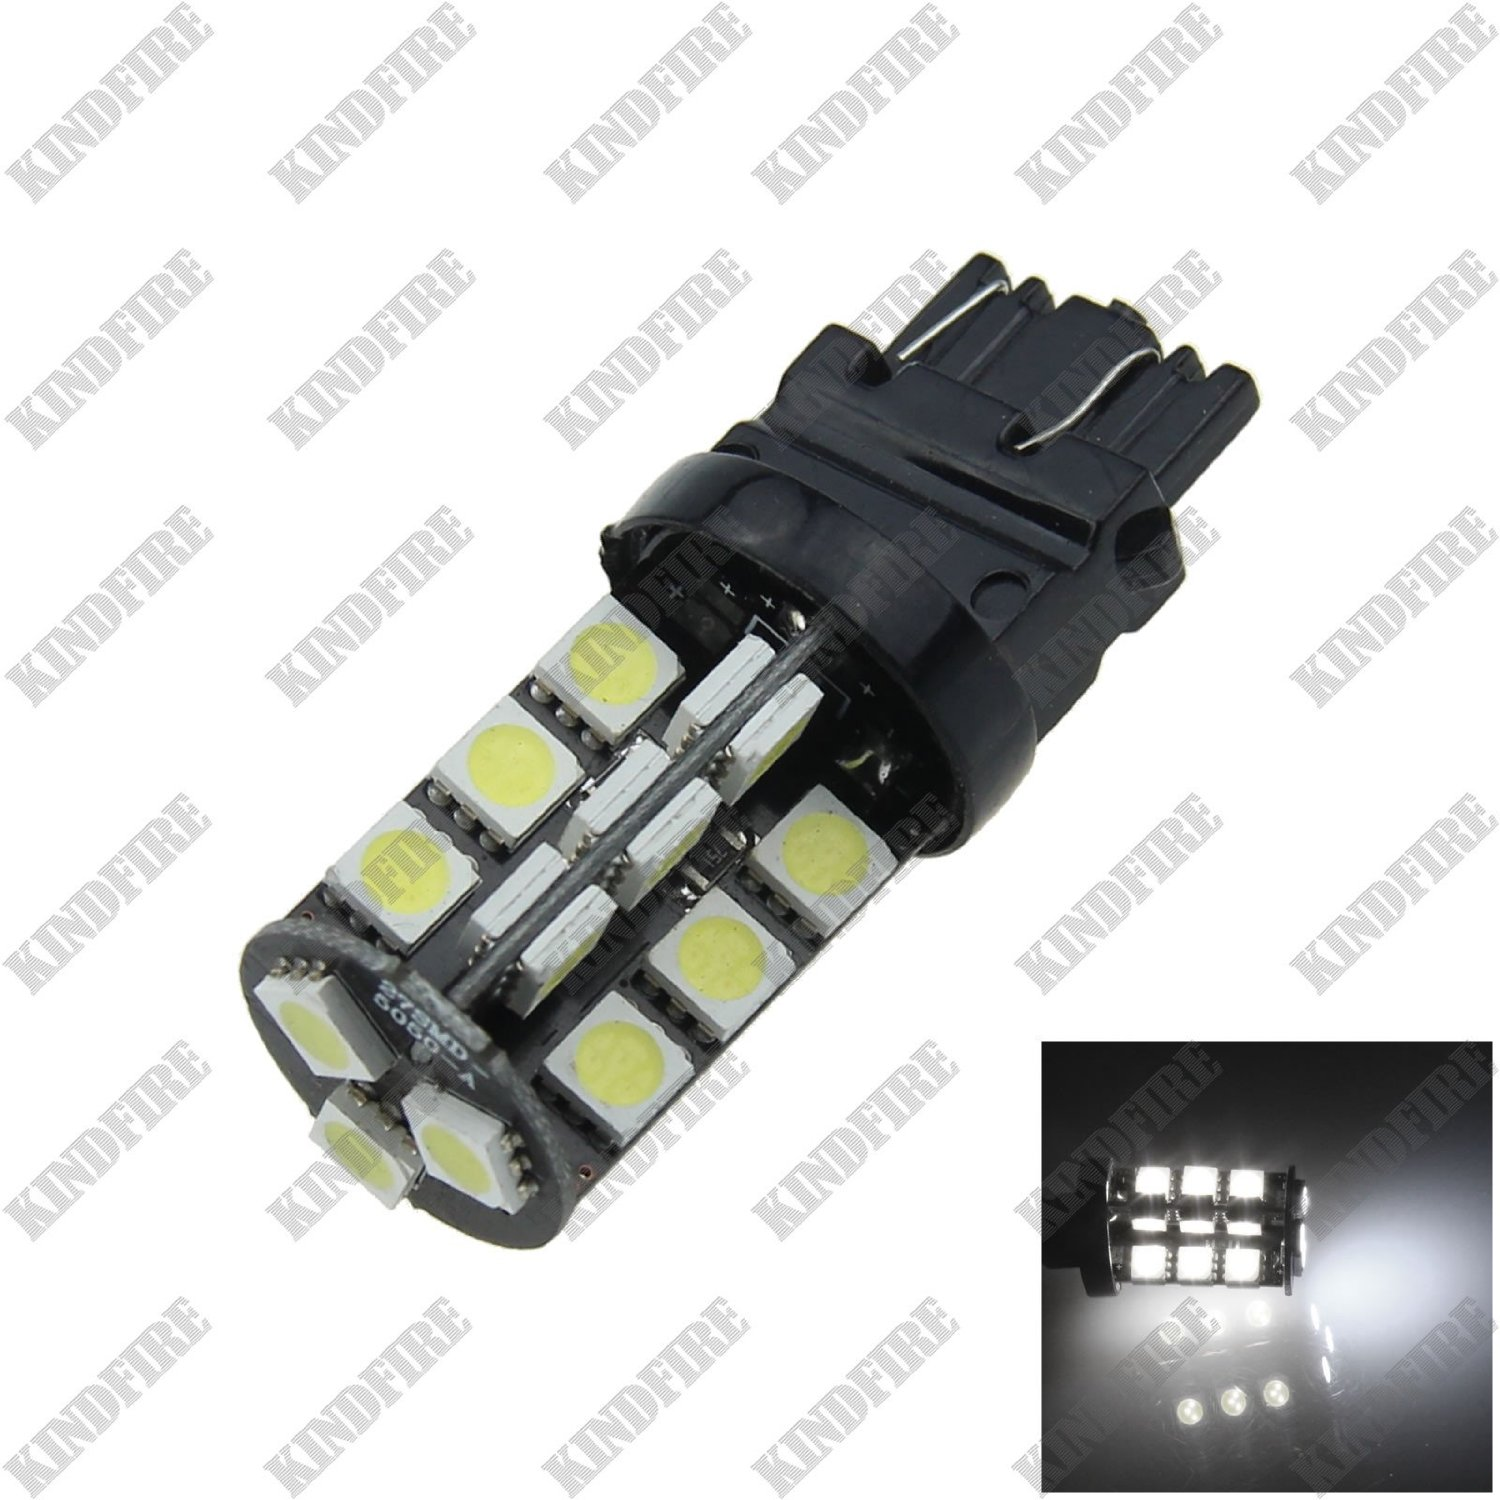 Kindfire 1X White 3156 3157 27-SMD 5050 LED Canbus Error Free Rear Light Brake Bulb F014